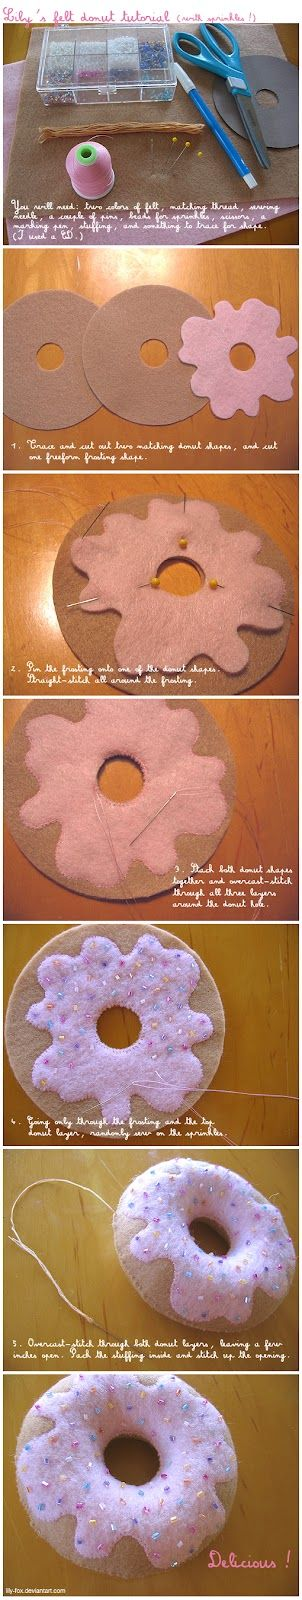 Felt donut tutorial! ^__^